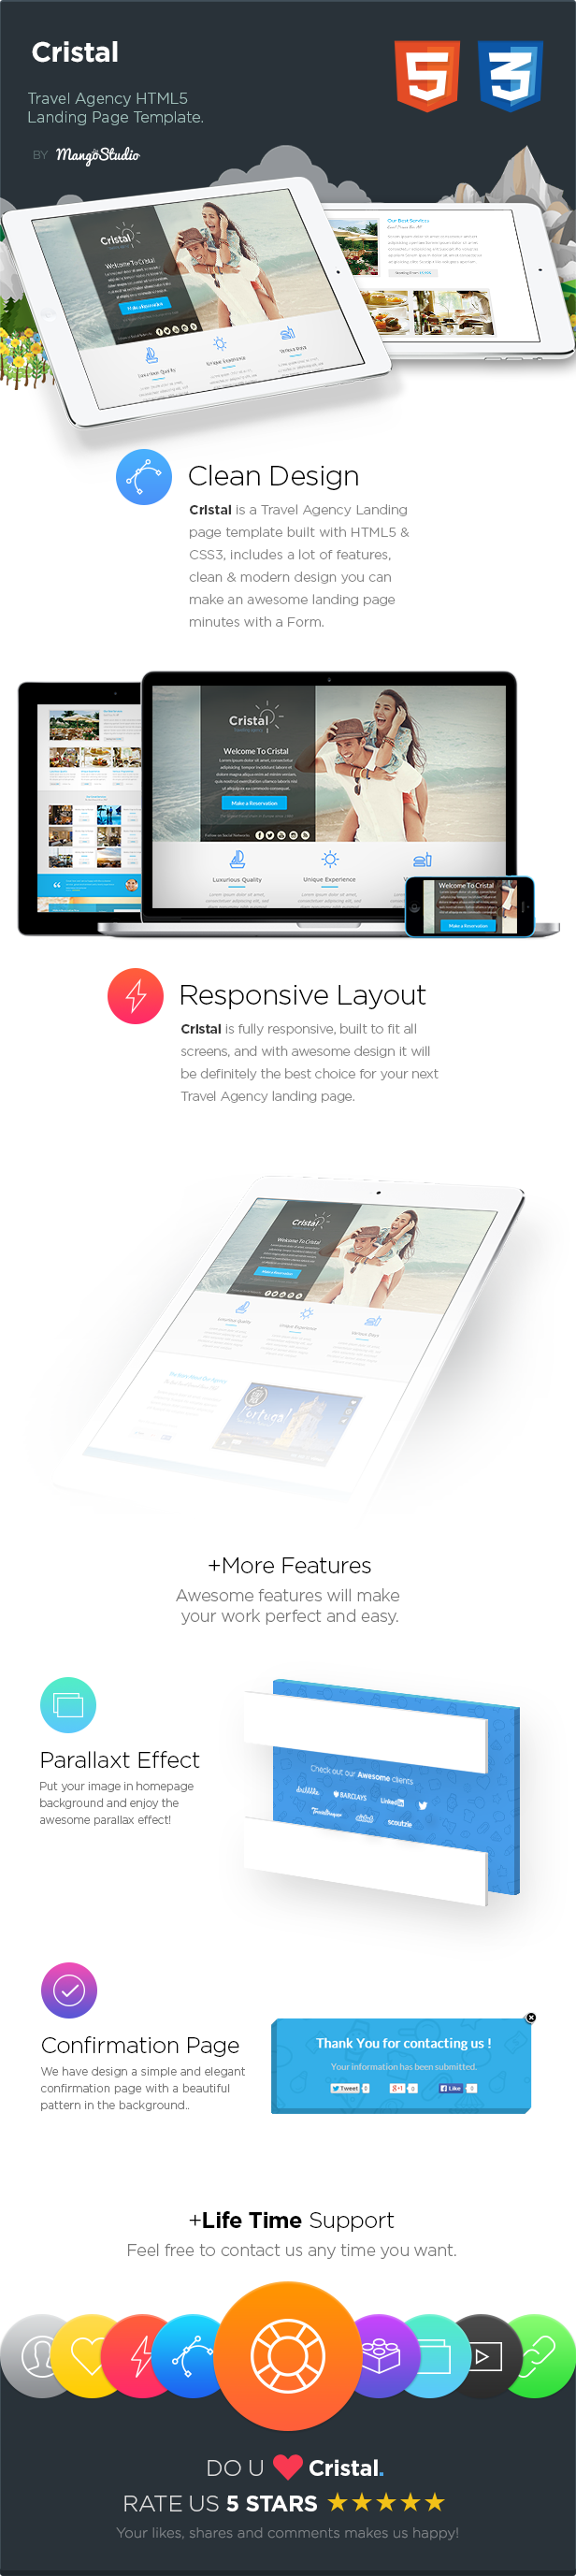 Cristal - Travel Agency HTML Landing Page Template - 2